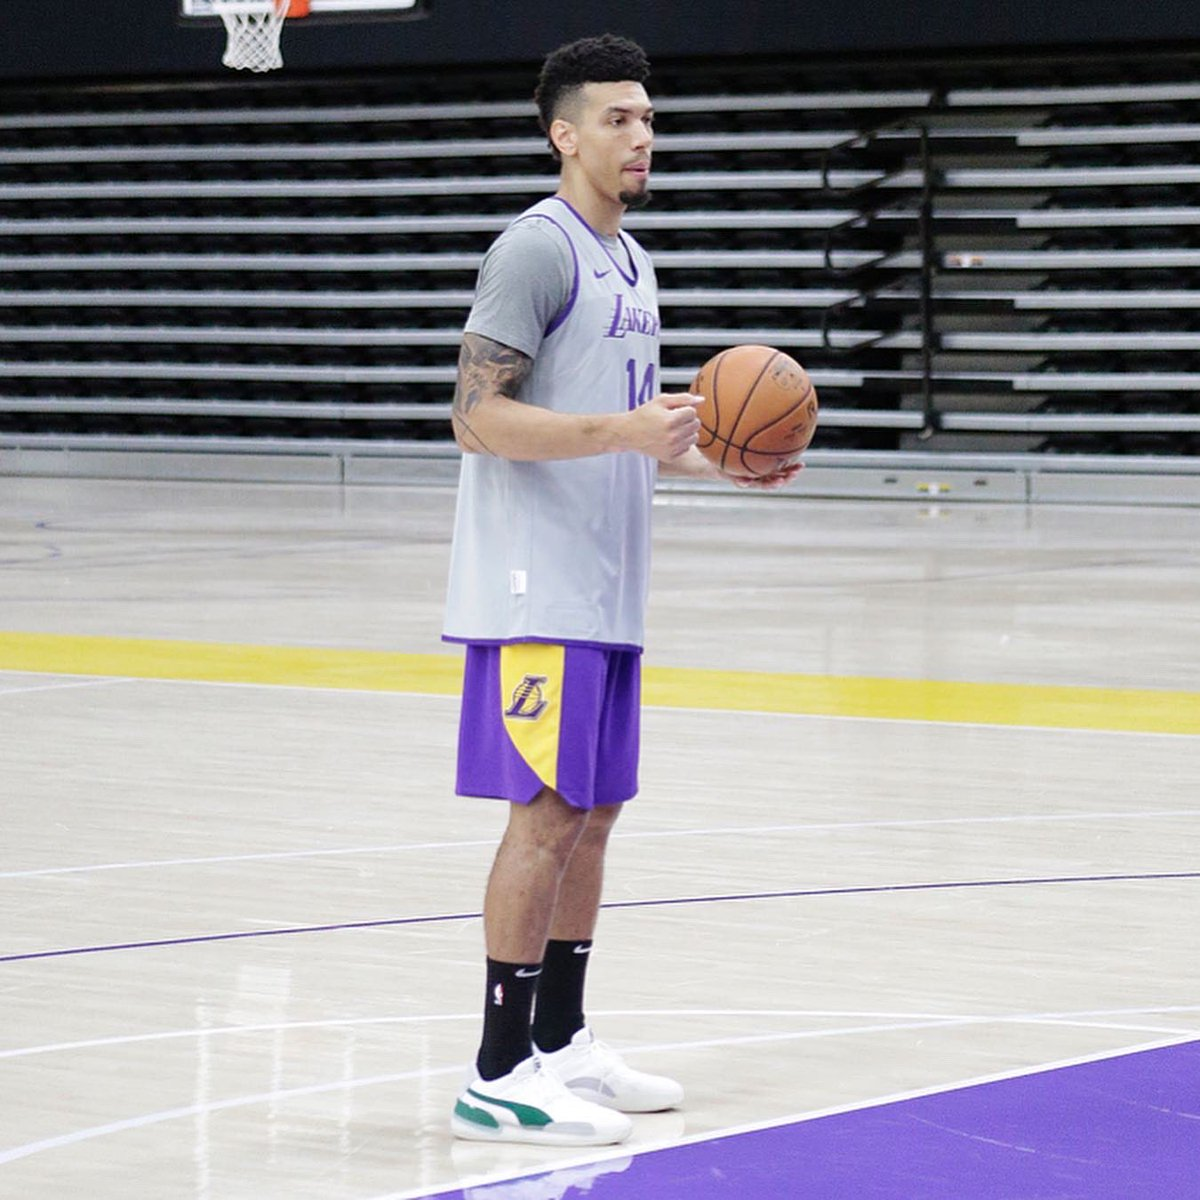 Nbakicks On Twitter Kyle Kuzma Danny Green Demarcus Cousins In The Puma Clyde Hardwood At Lakers Training Camp Nbakicks